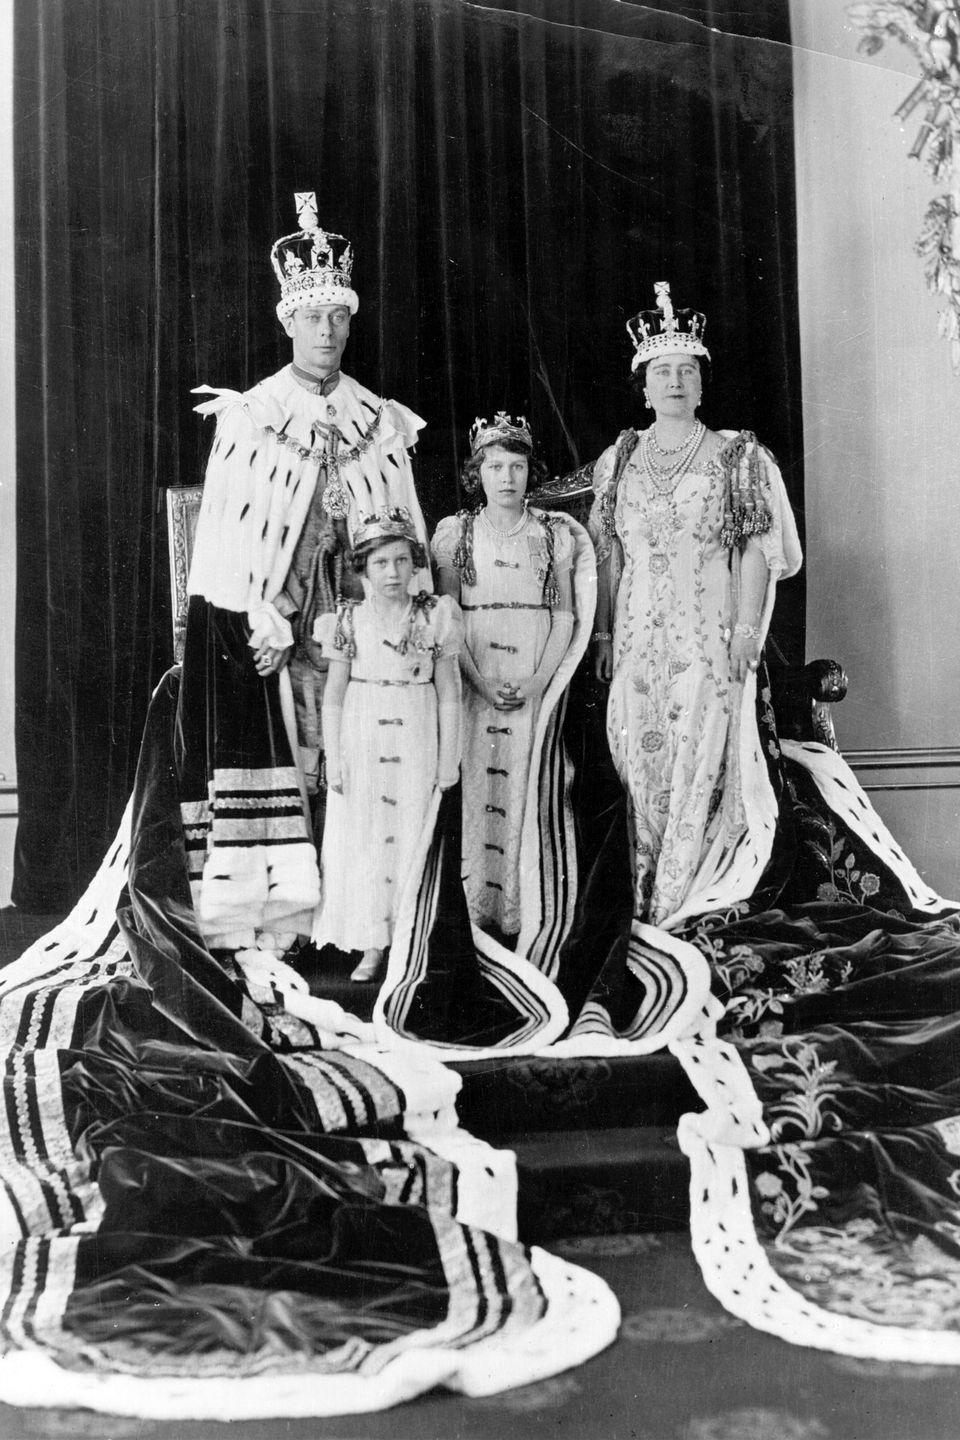 <p>With her father King George VI, her mother Queen Elizabeth, and her sister Princess Margaret in their coronation robes in 1937.</p>